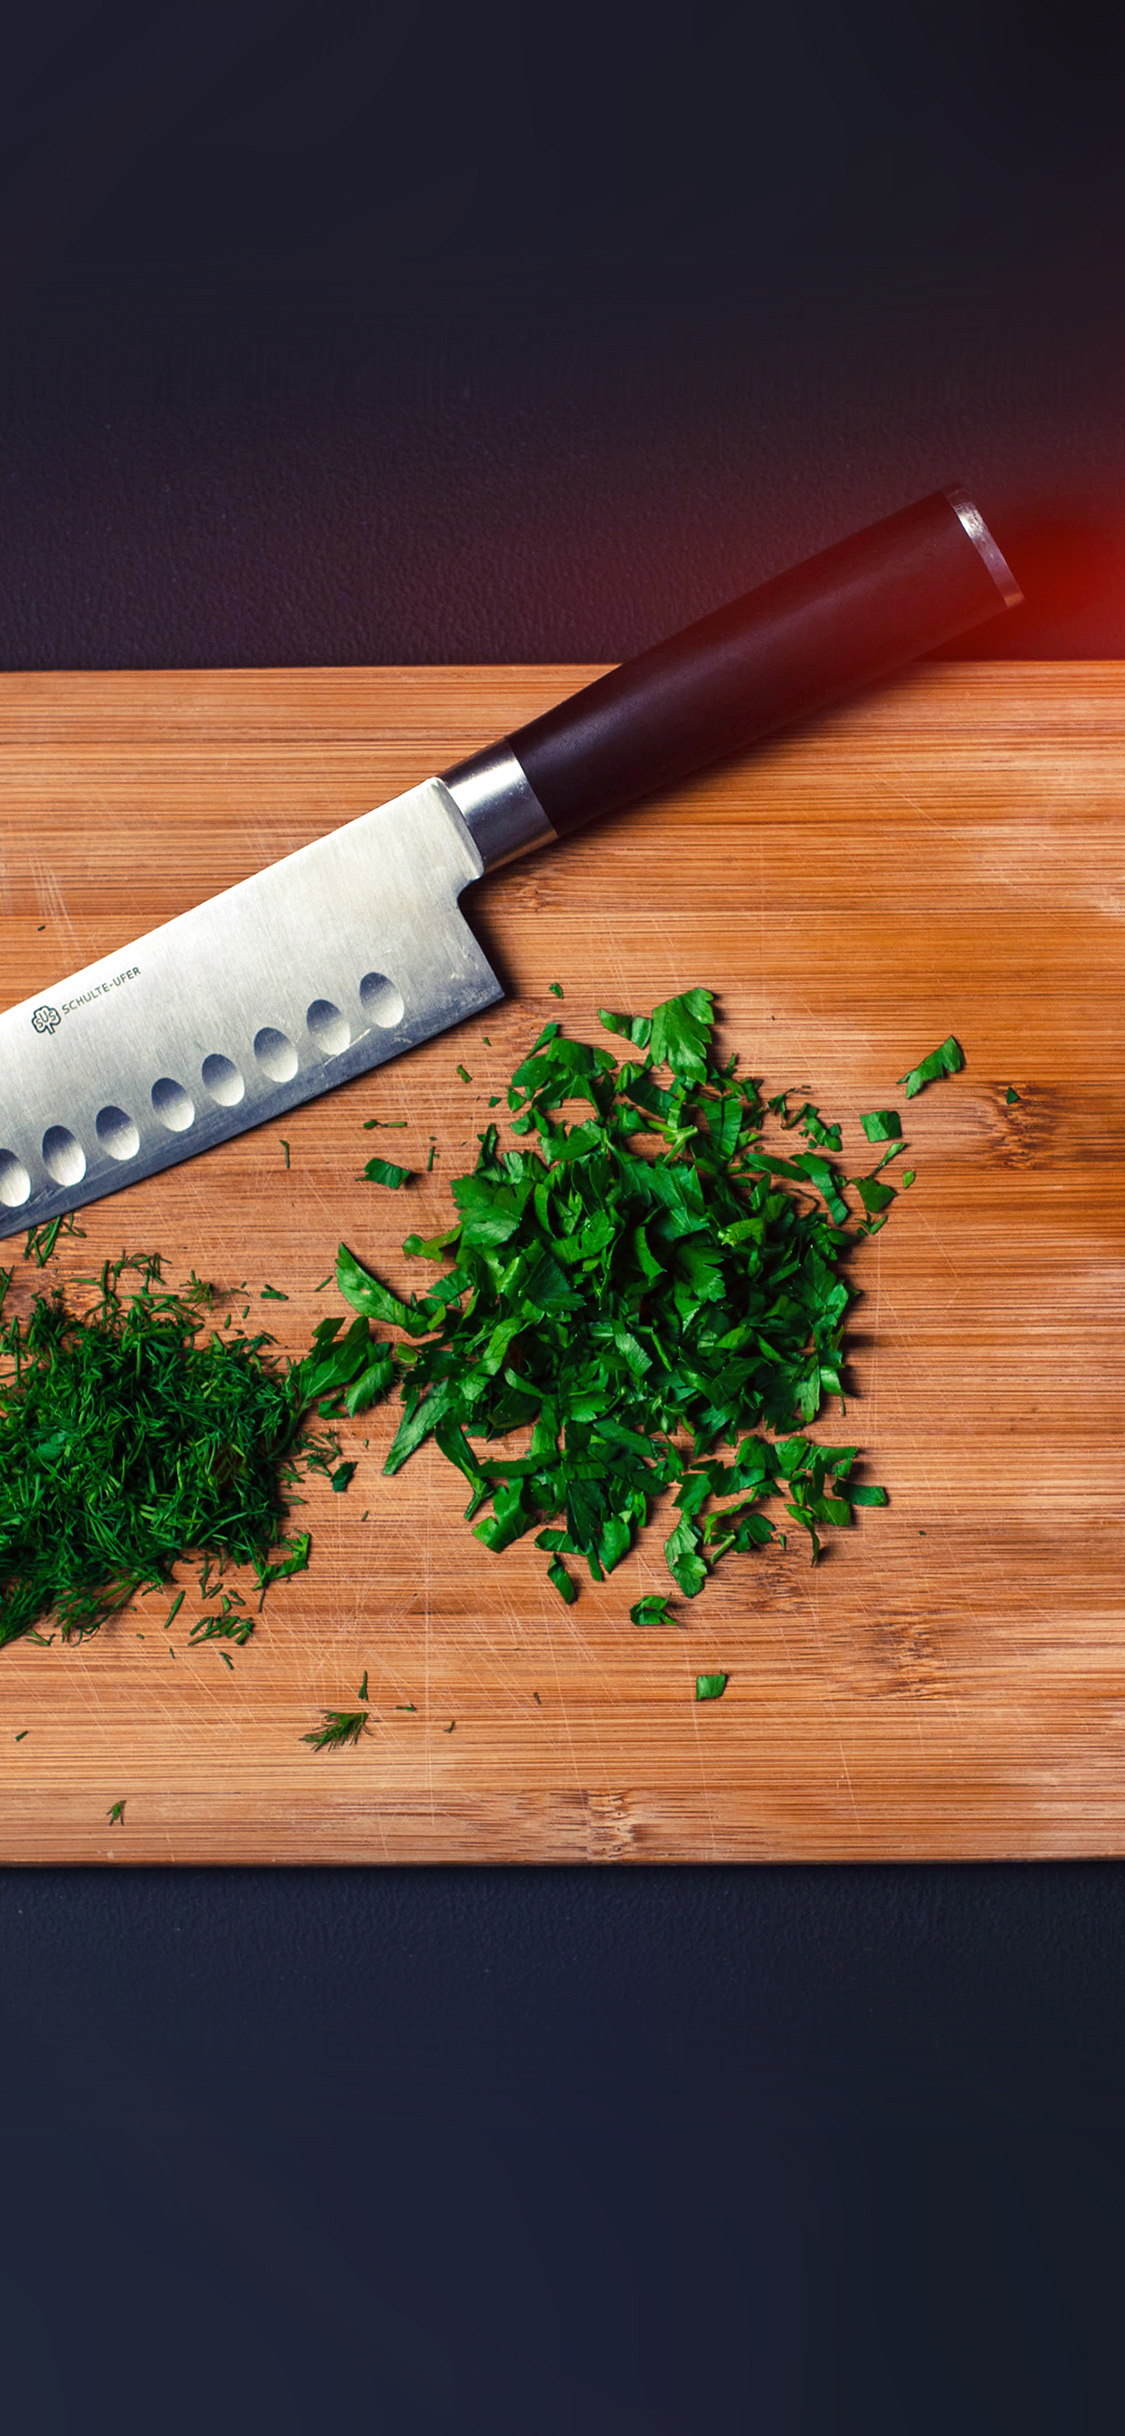 iPhonexpapers.com-Apple-iPhone-wallpaper-mv85-food-knife-green-kitchen-city-life-flare